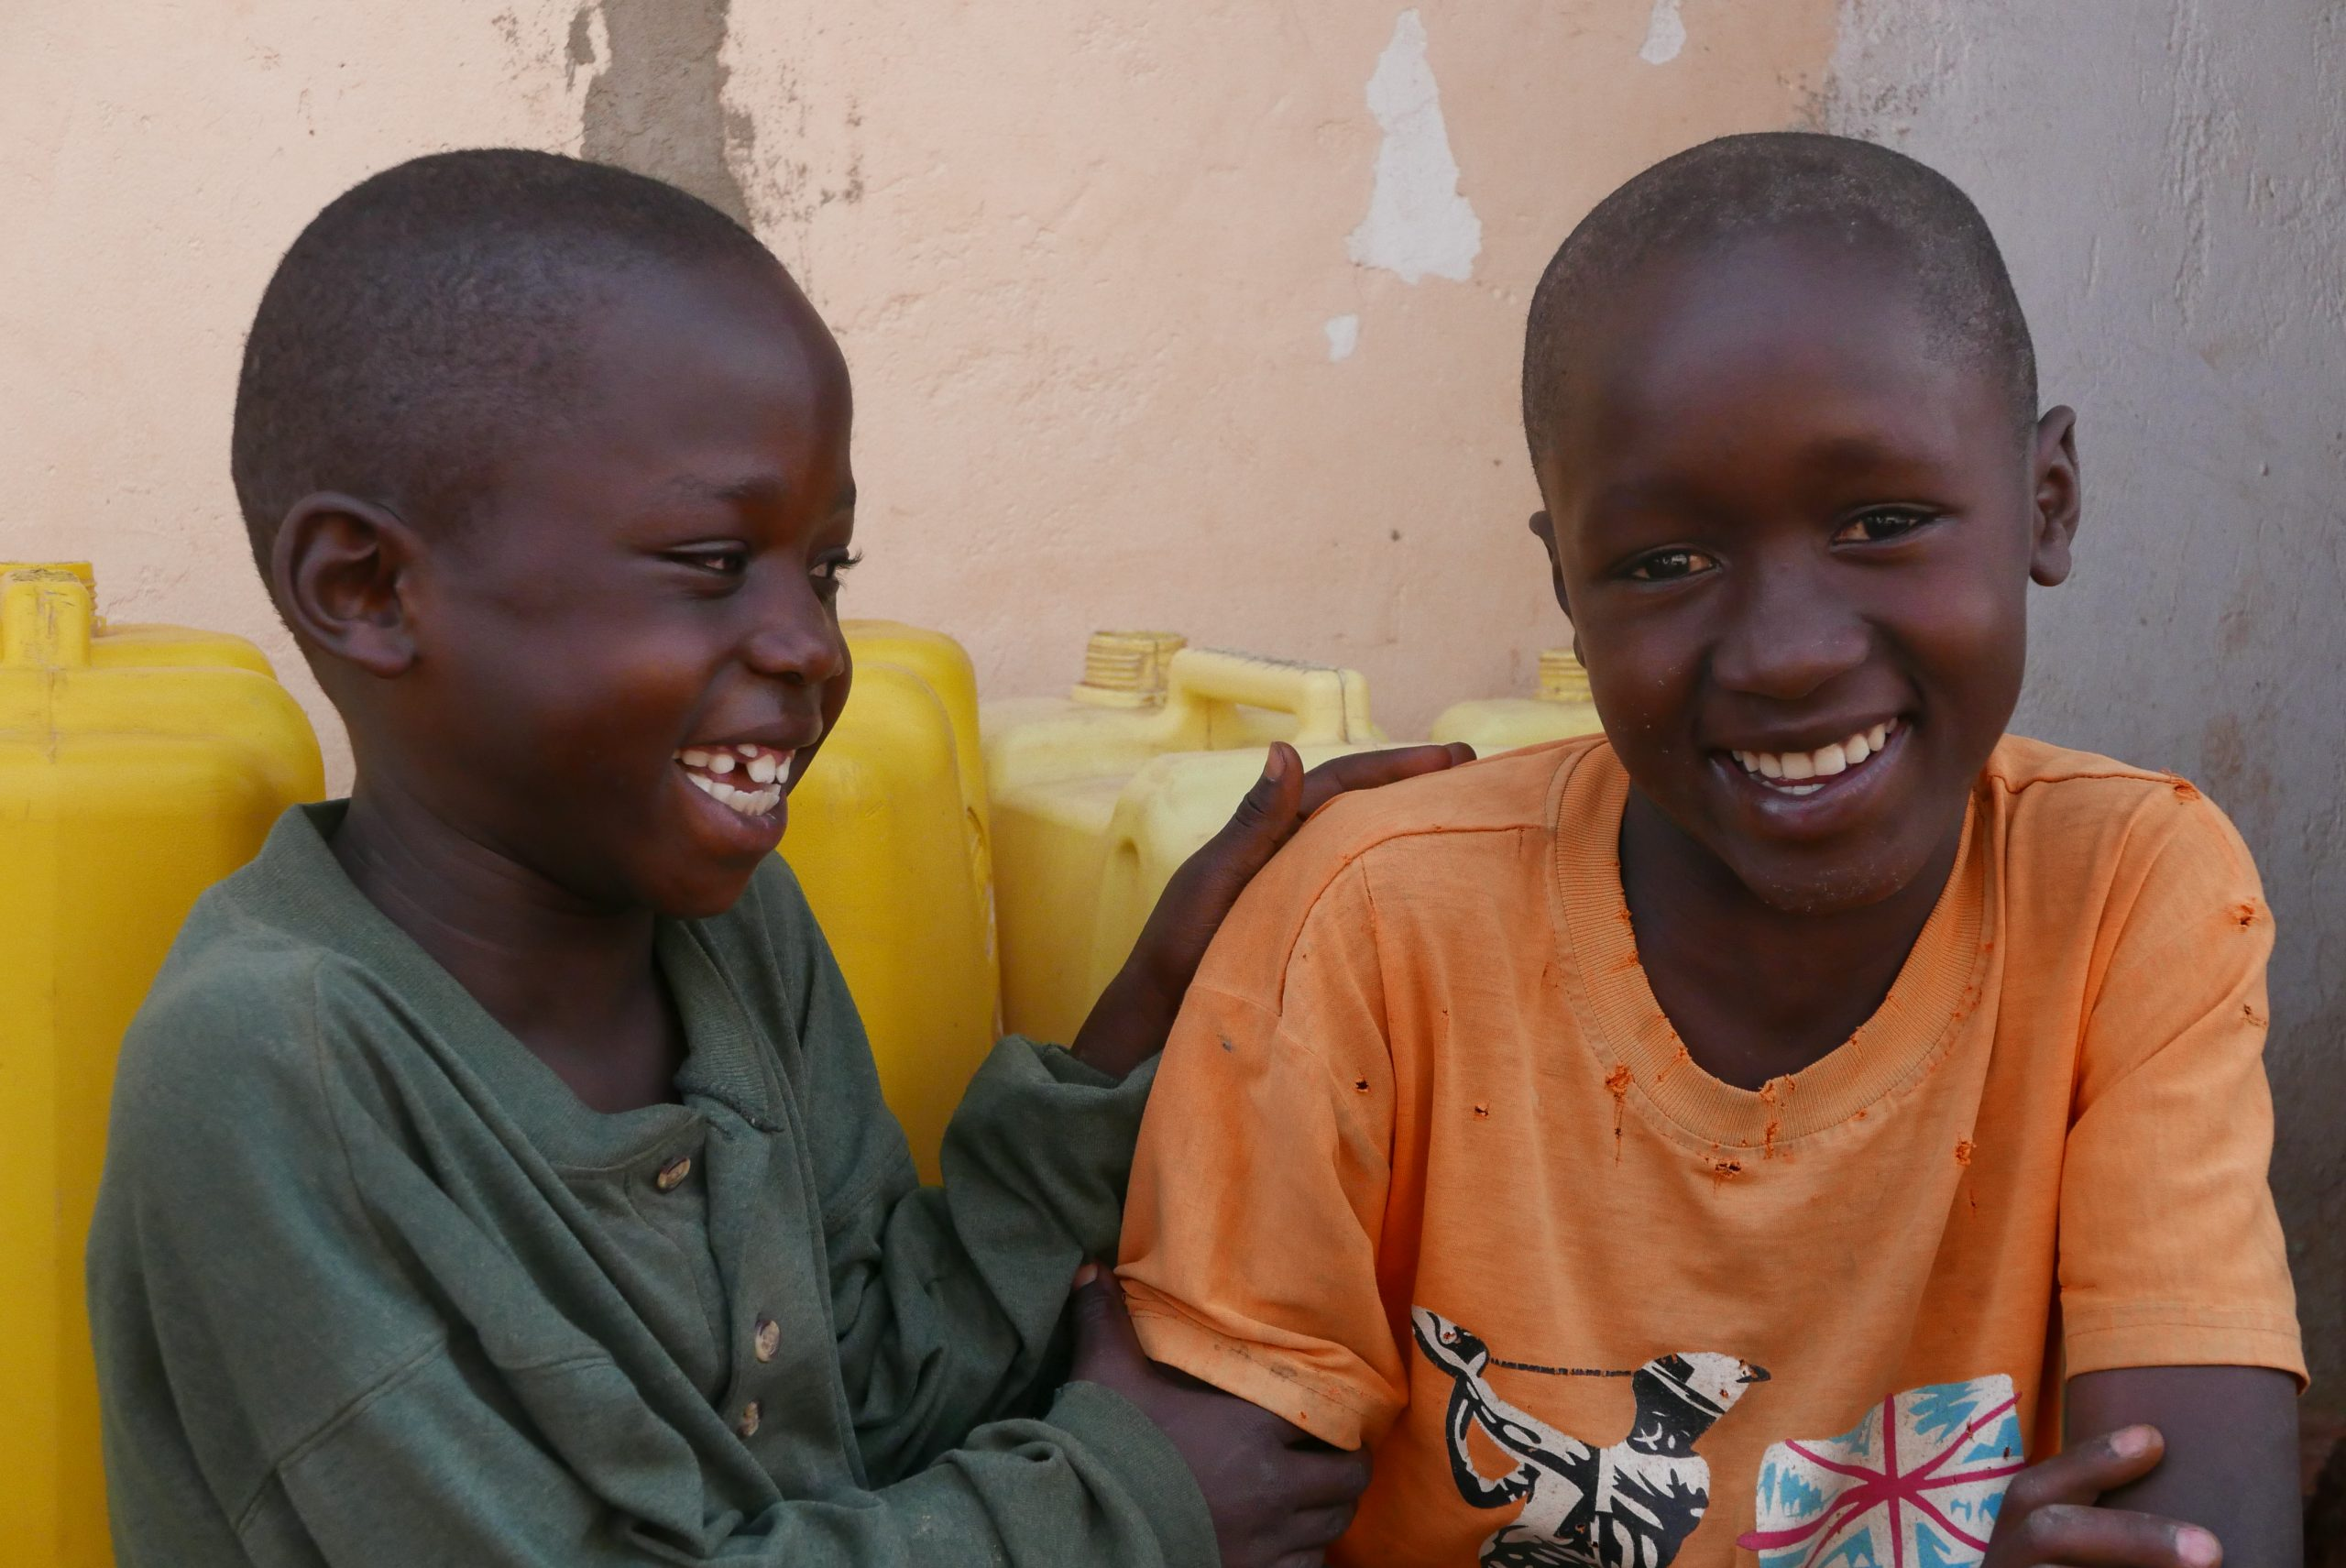 Two Ugandan children laughing together